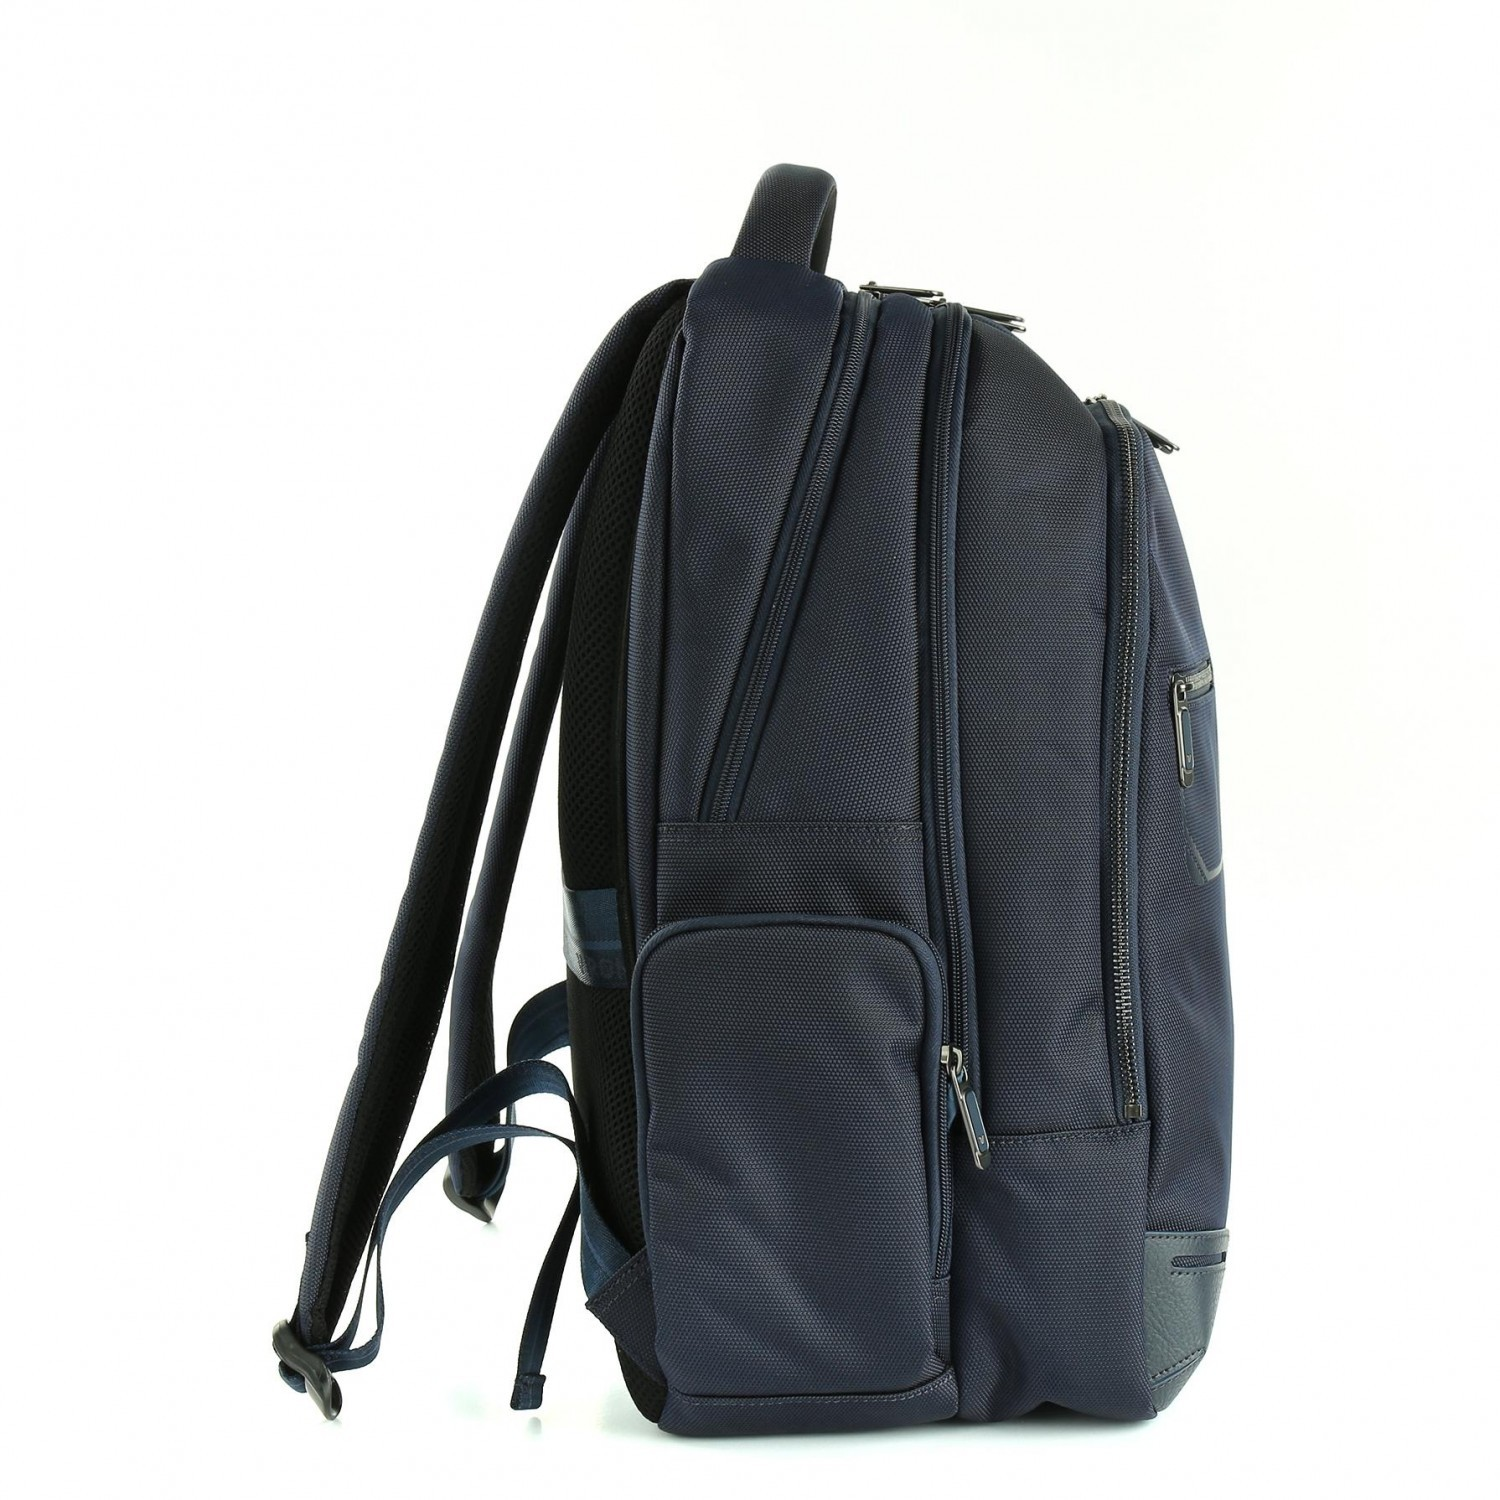 Рюкзак бизнес Roncato Wall Street LAPTOP BACKPACK 15.6